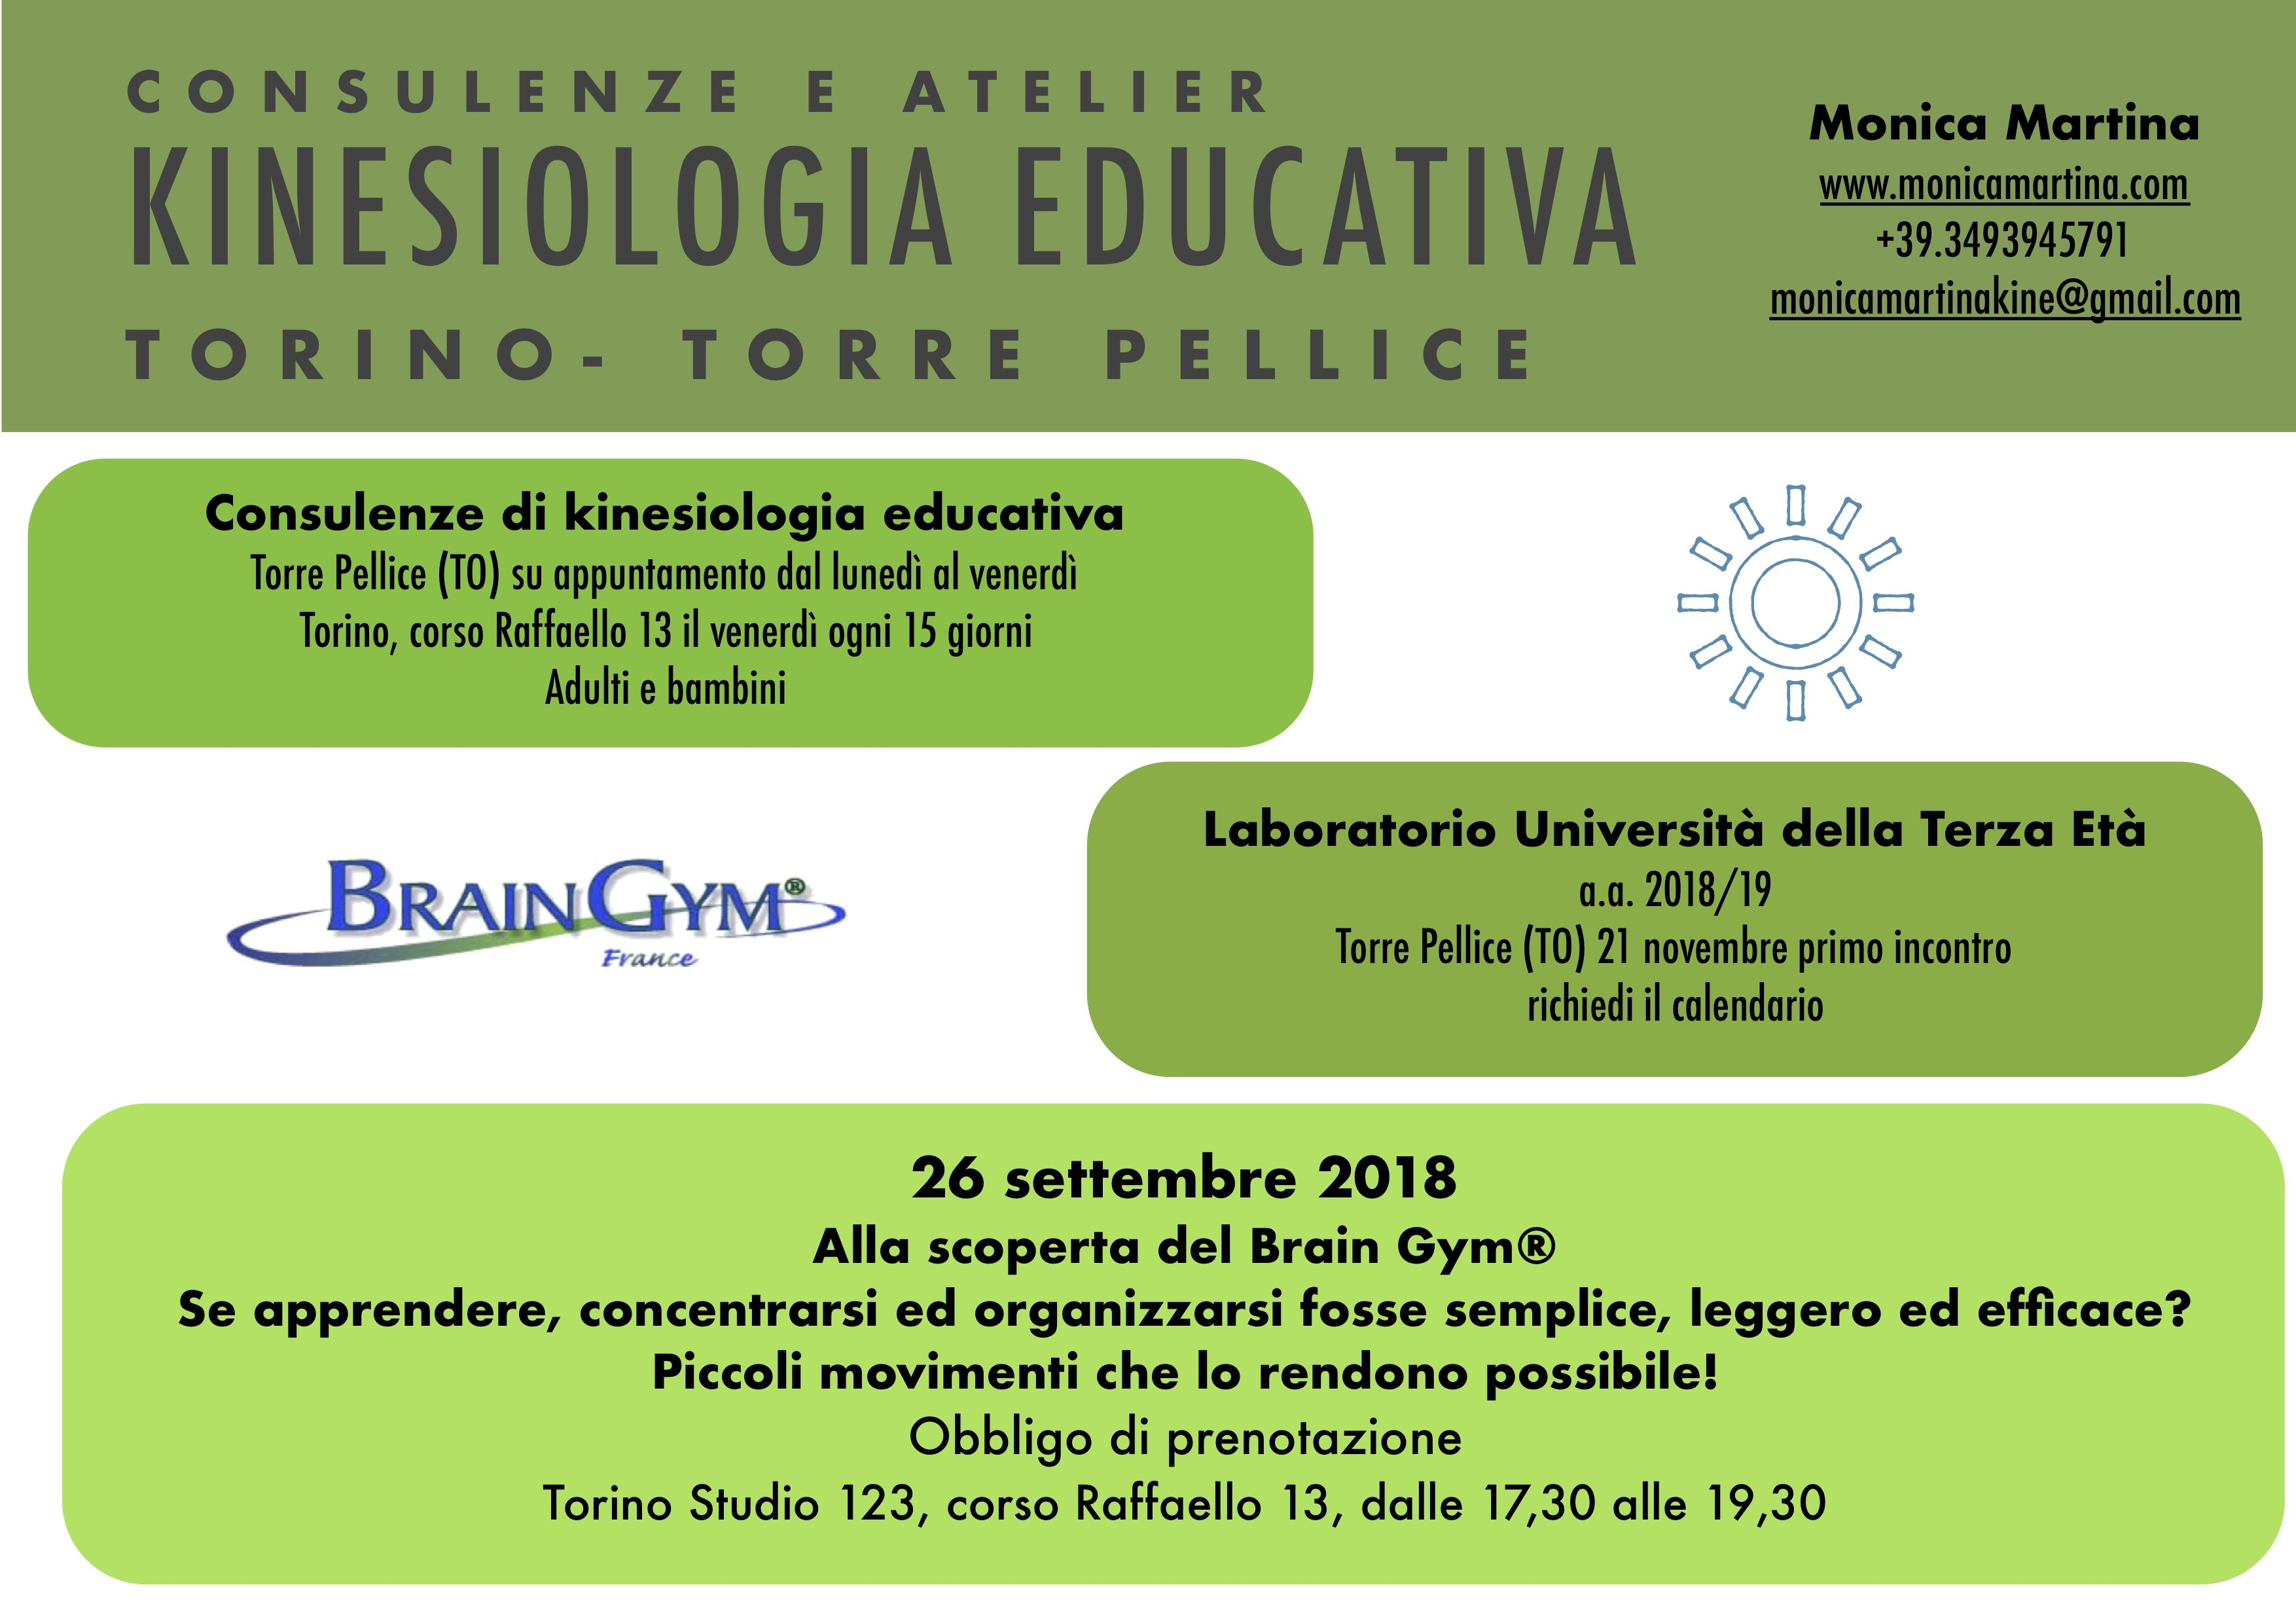 Calendario 2019 Ottobre Más Recientes Kinesiologia Educativa Brain Gym touch for Health Psych K Metodo Of Calendario 2019 Ottobre Más Actual Capodanno 2017 A Siena Piazza Del Campo